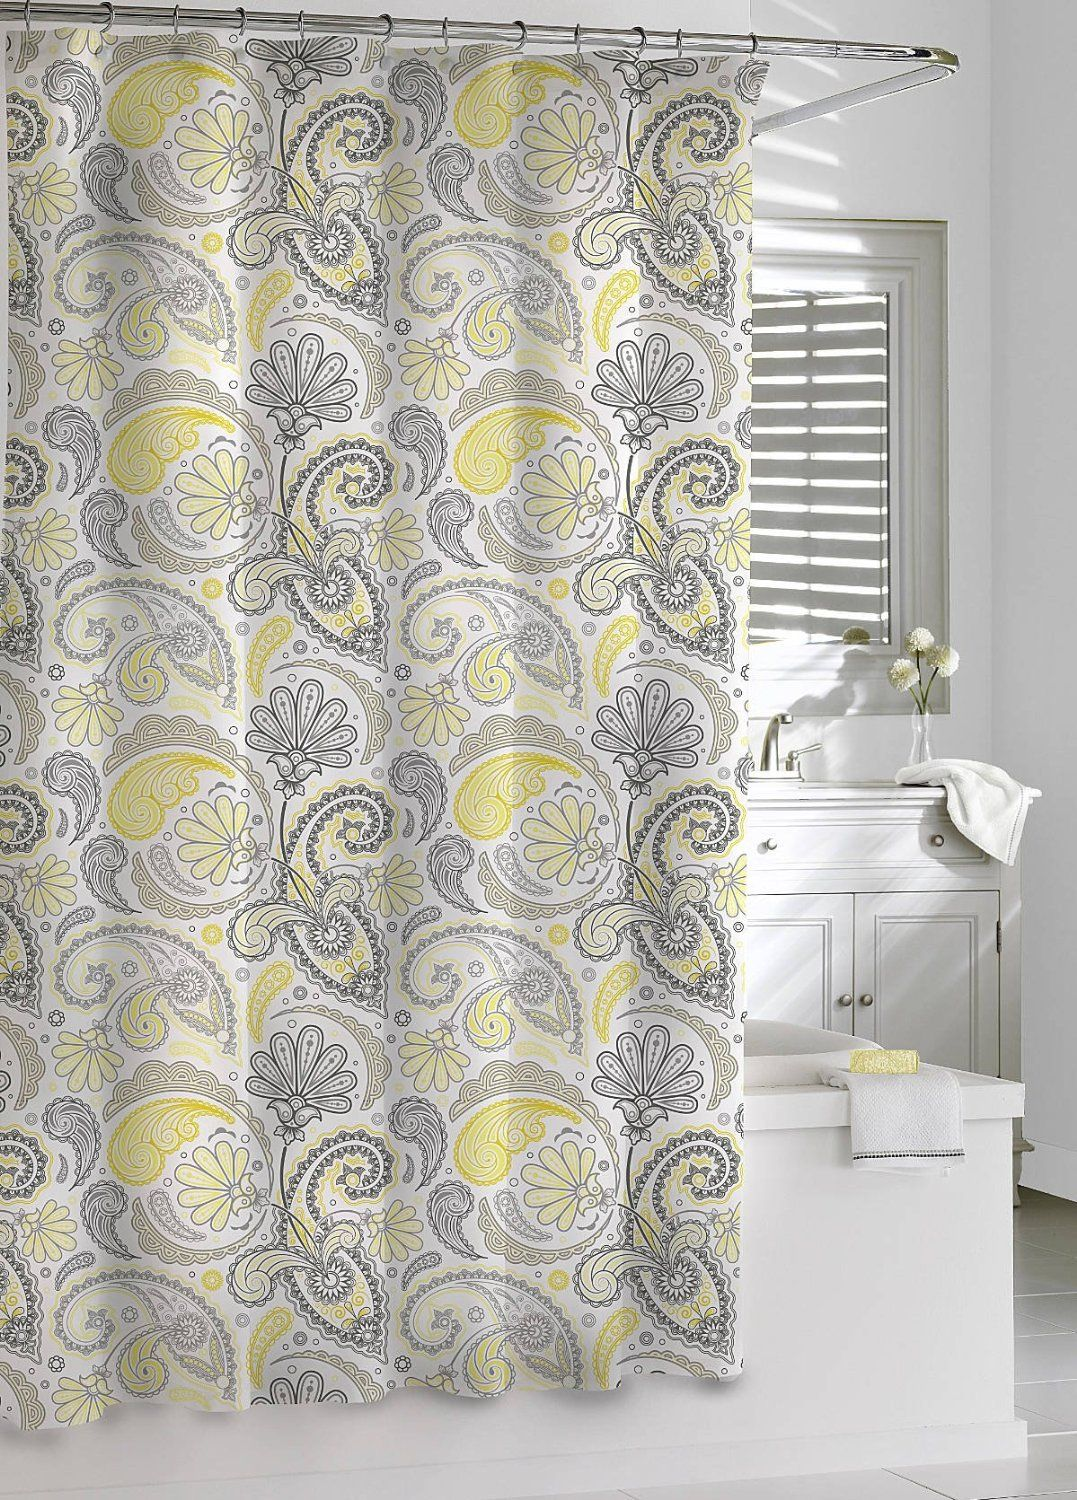 Yellow Fabric Shower Curtain Grey And Yellow Paisley Shower Curtain Curtain